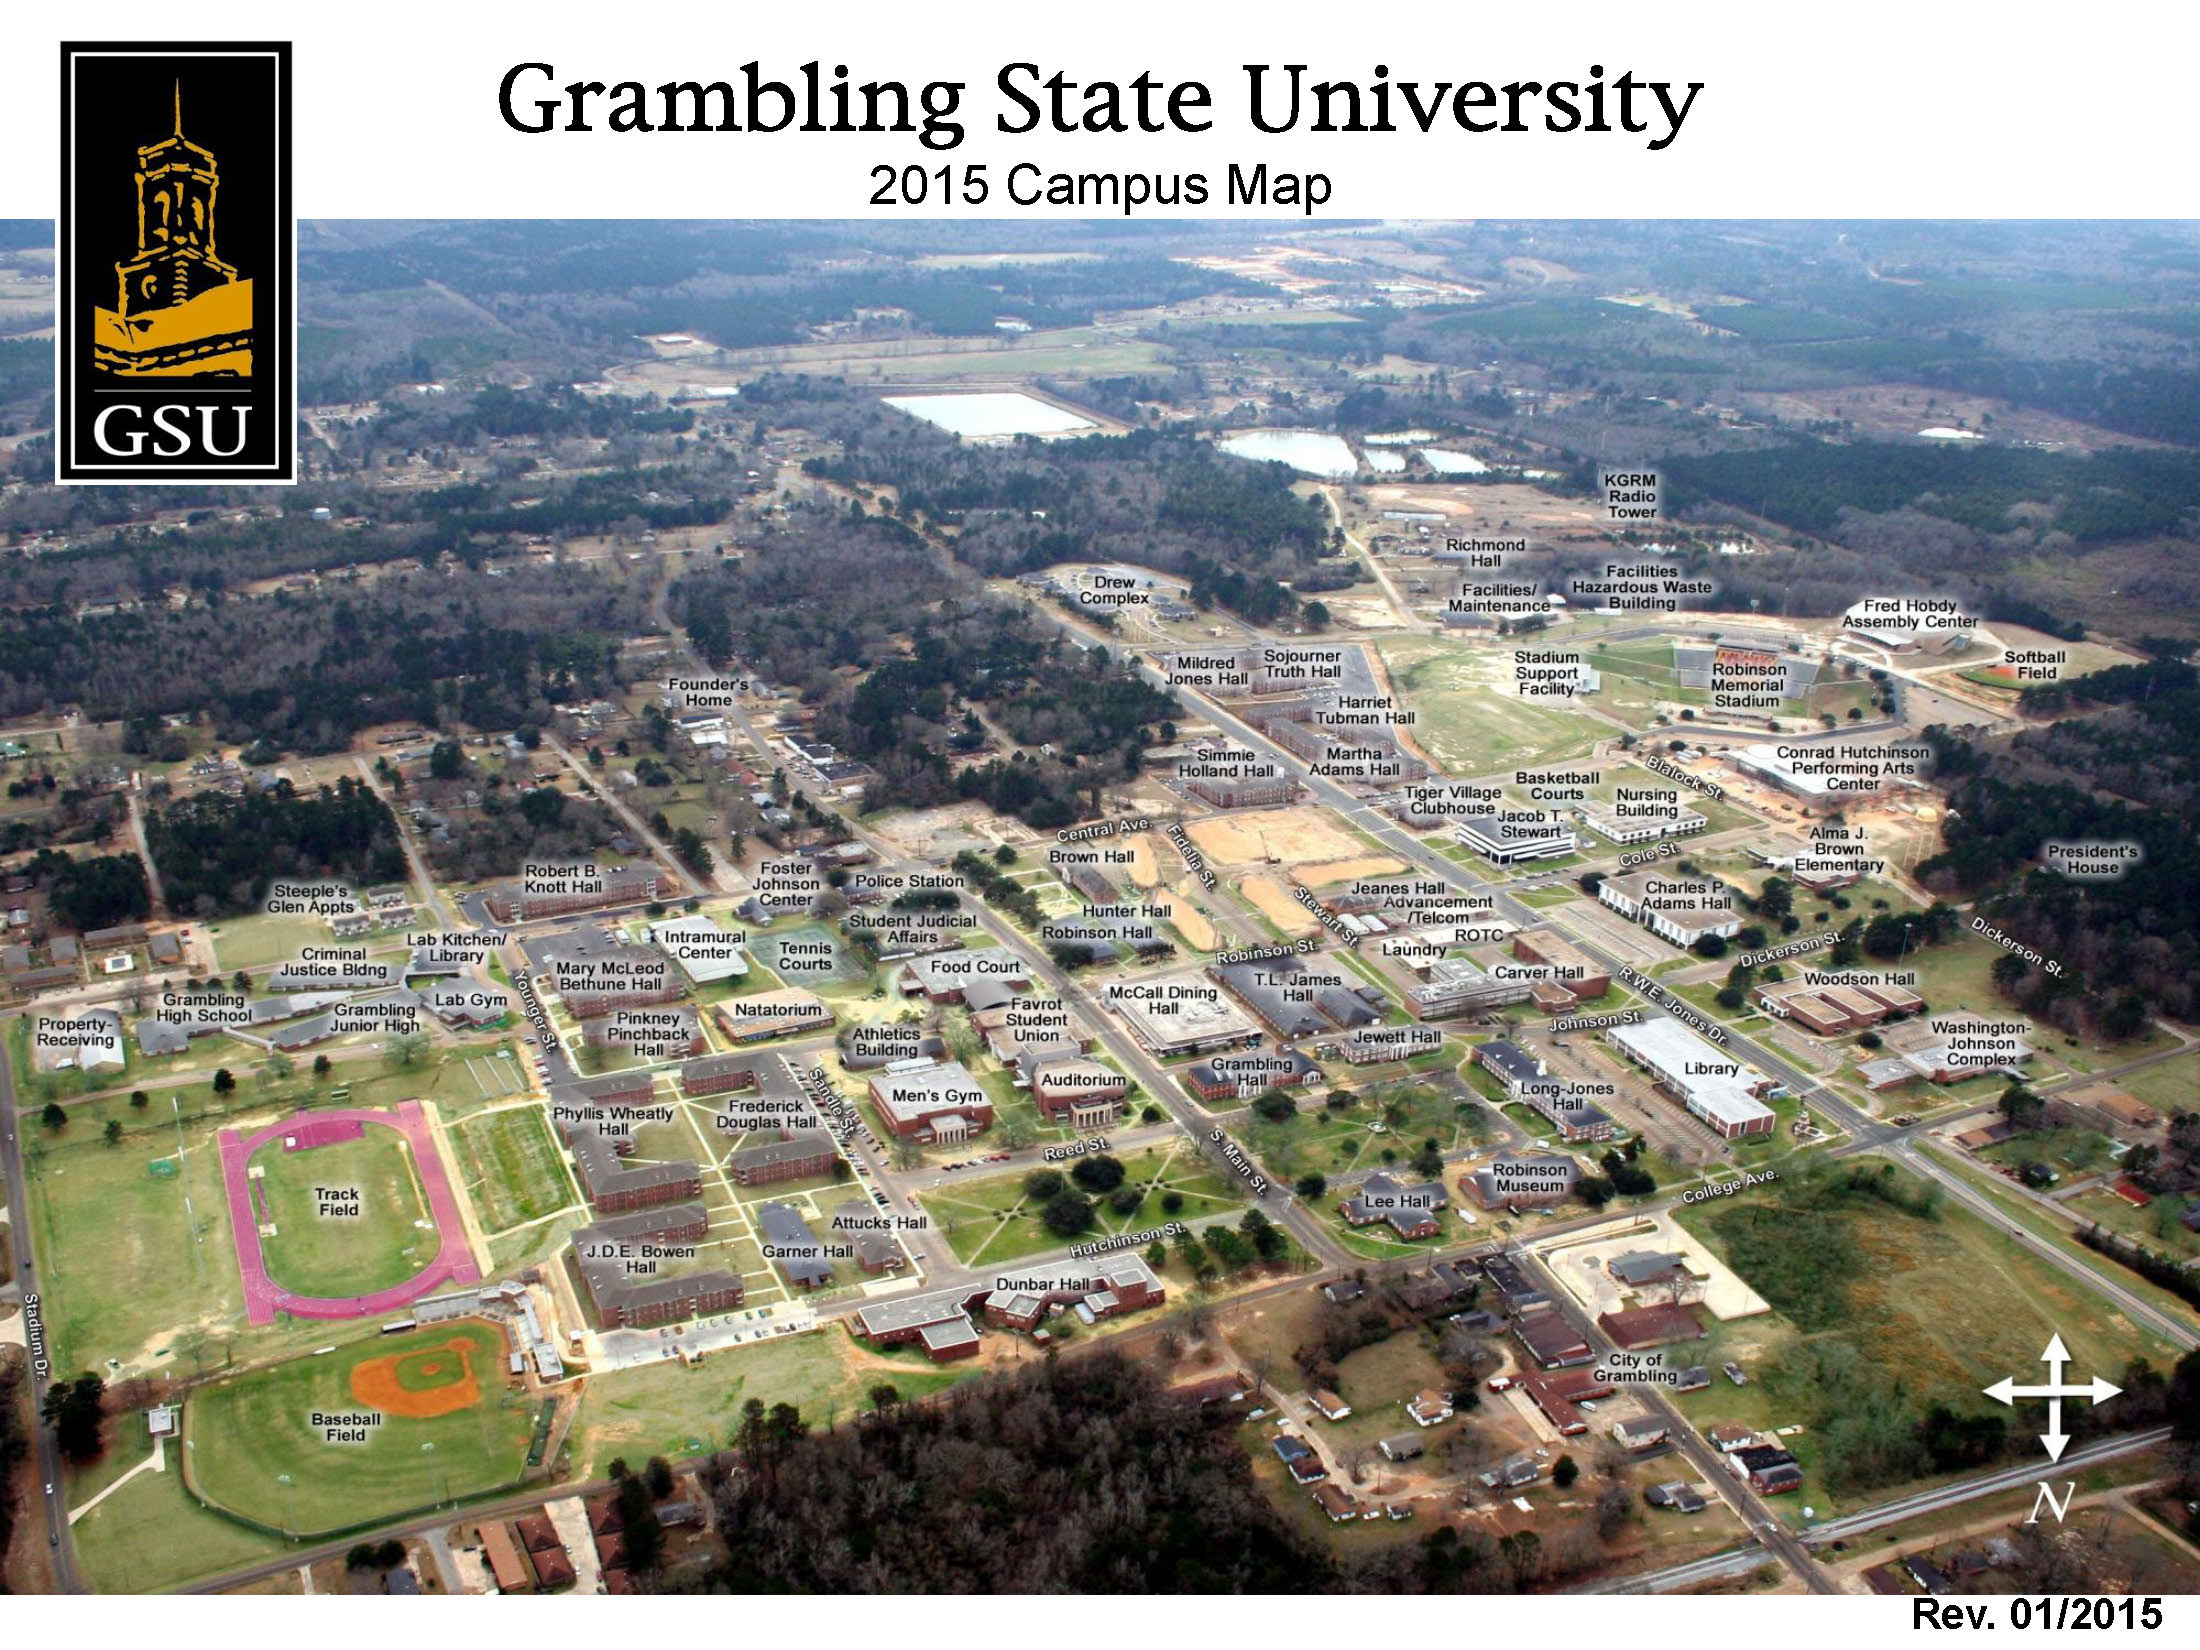 grambling state university campus map Grambling State University Campus Map grambling state university campus map